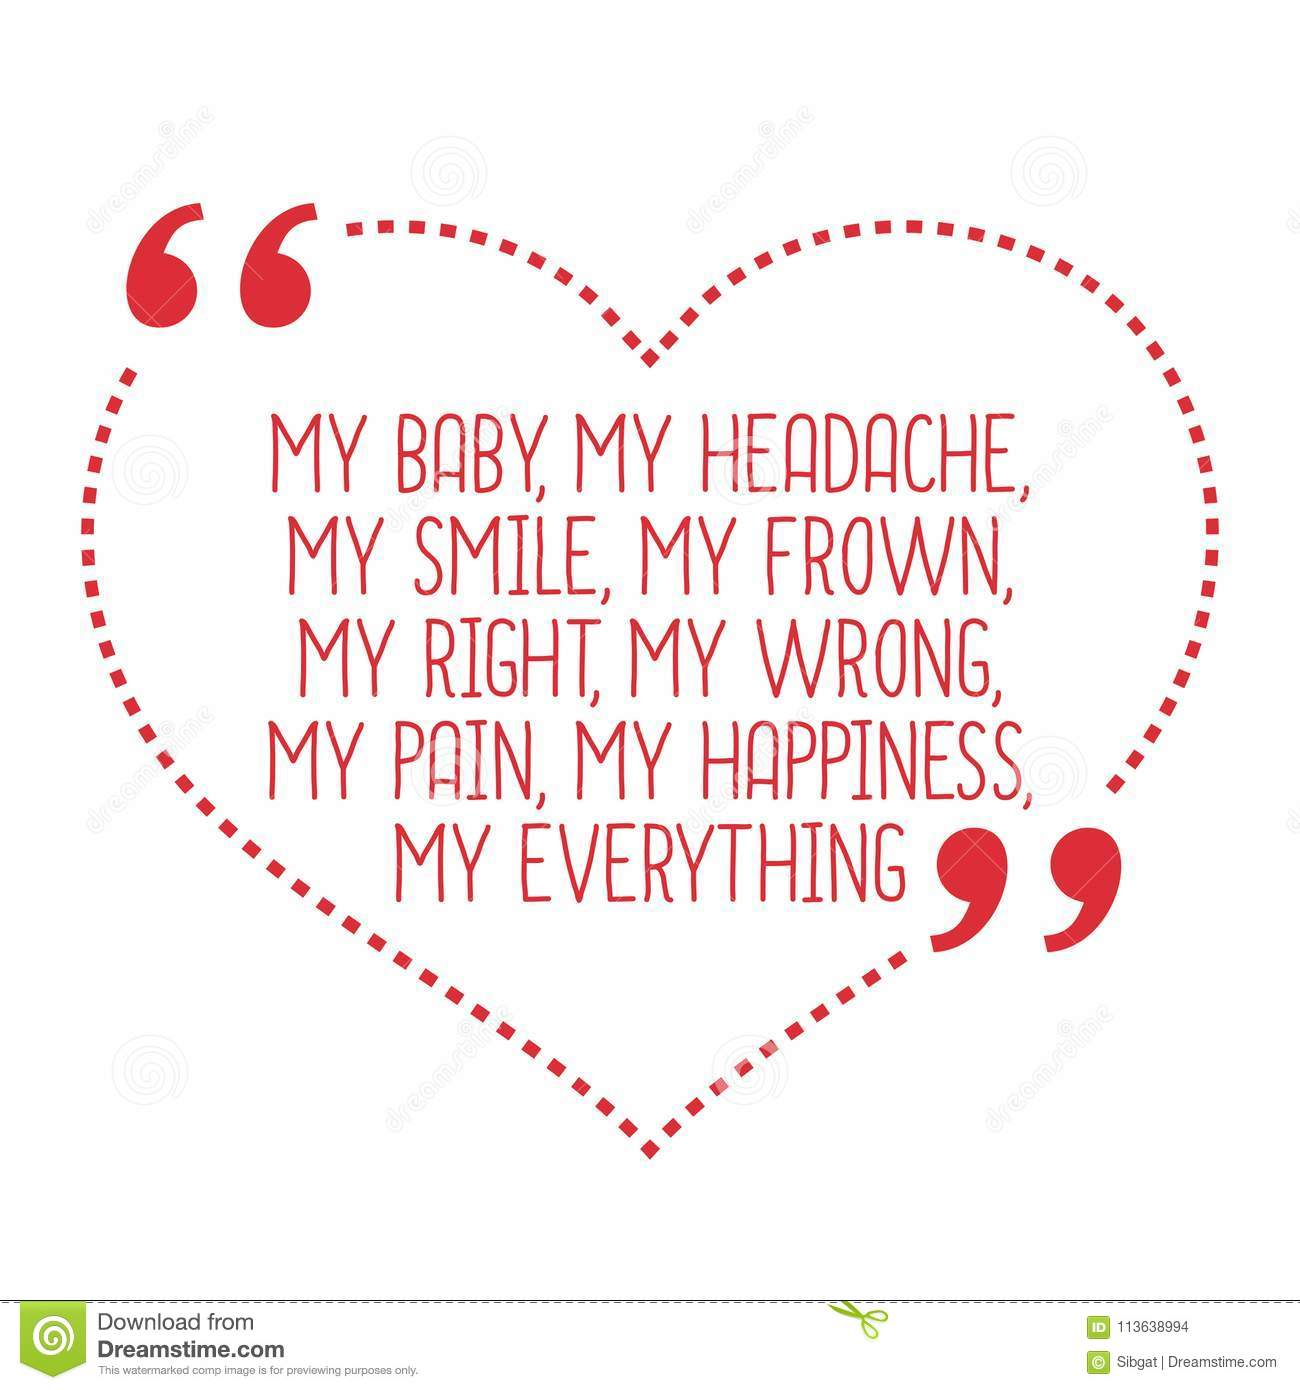 Image of: Memes Funny Love Quote My Baby My Headache My Smile My Frown Dreamstimecom Funny Love Quote My Baby My Headache My Smile My Frown My